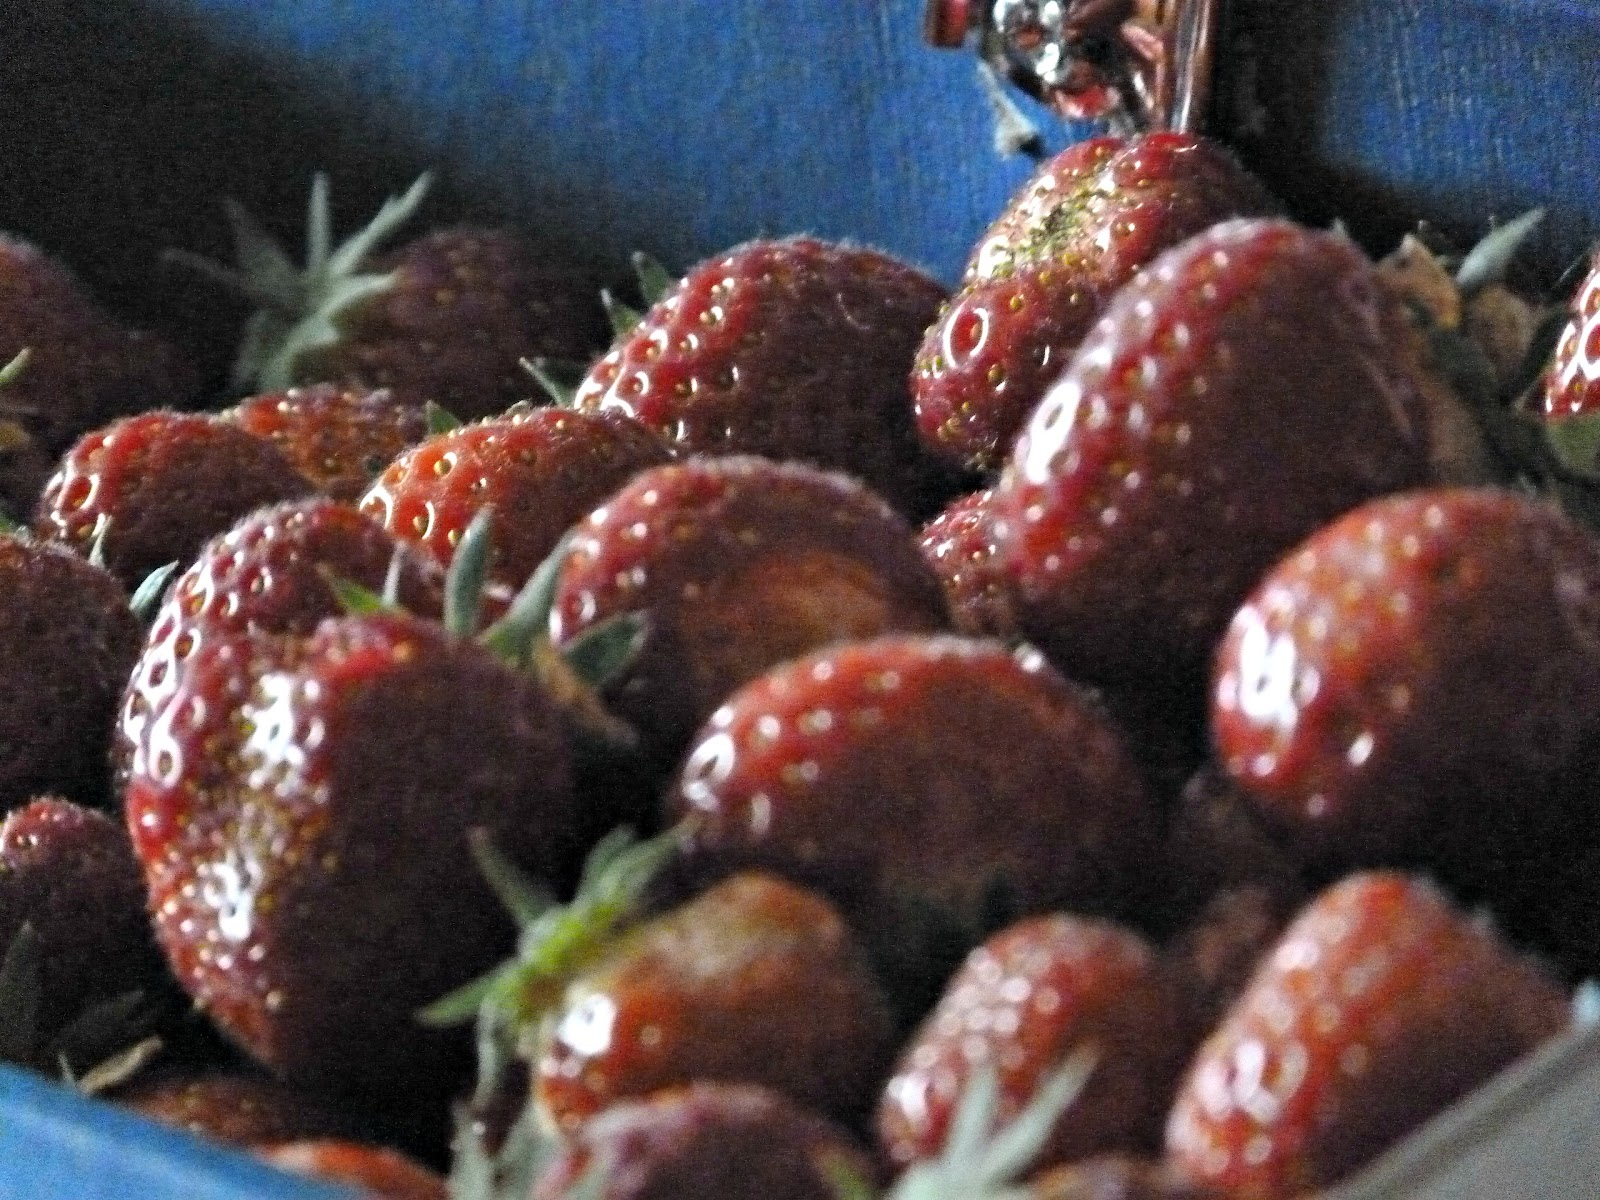 Strawberries - Scottish, tasty and healthy.